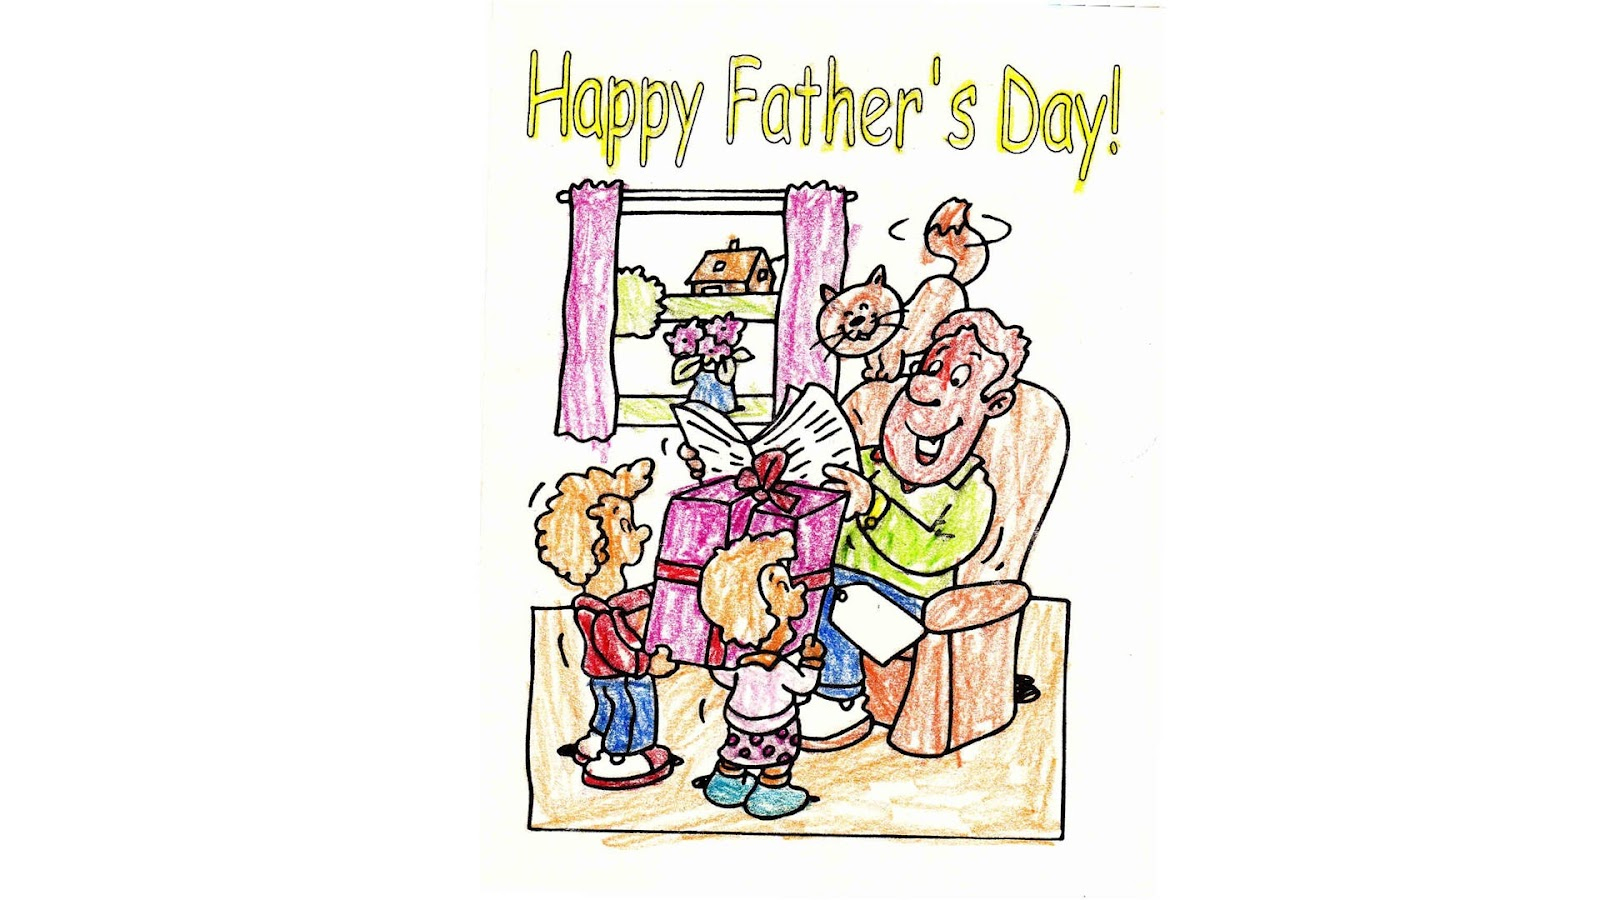 fathers day cartoon wallpapers cool christian wallpapers